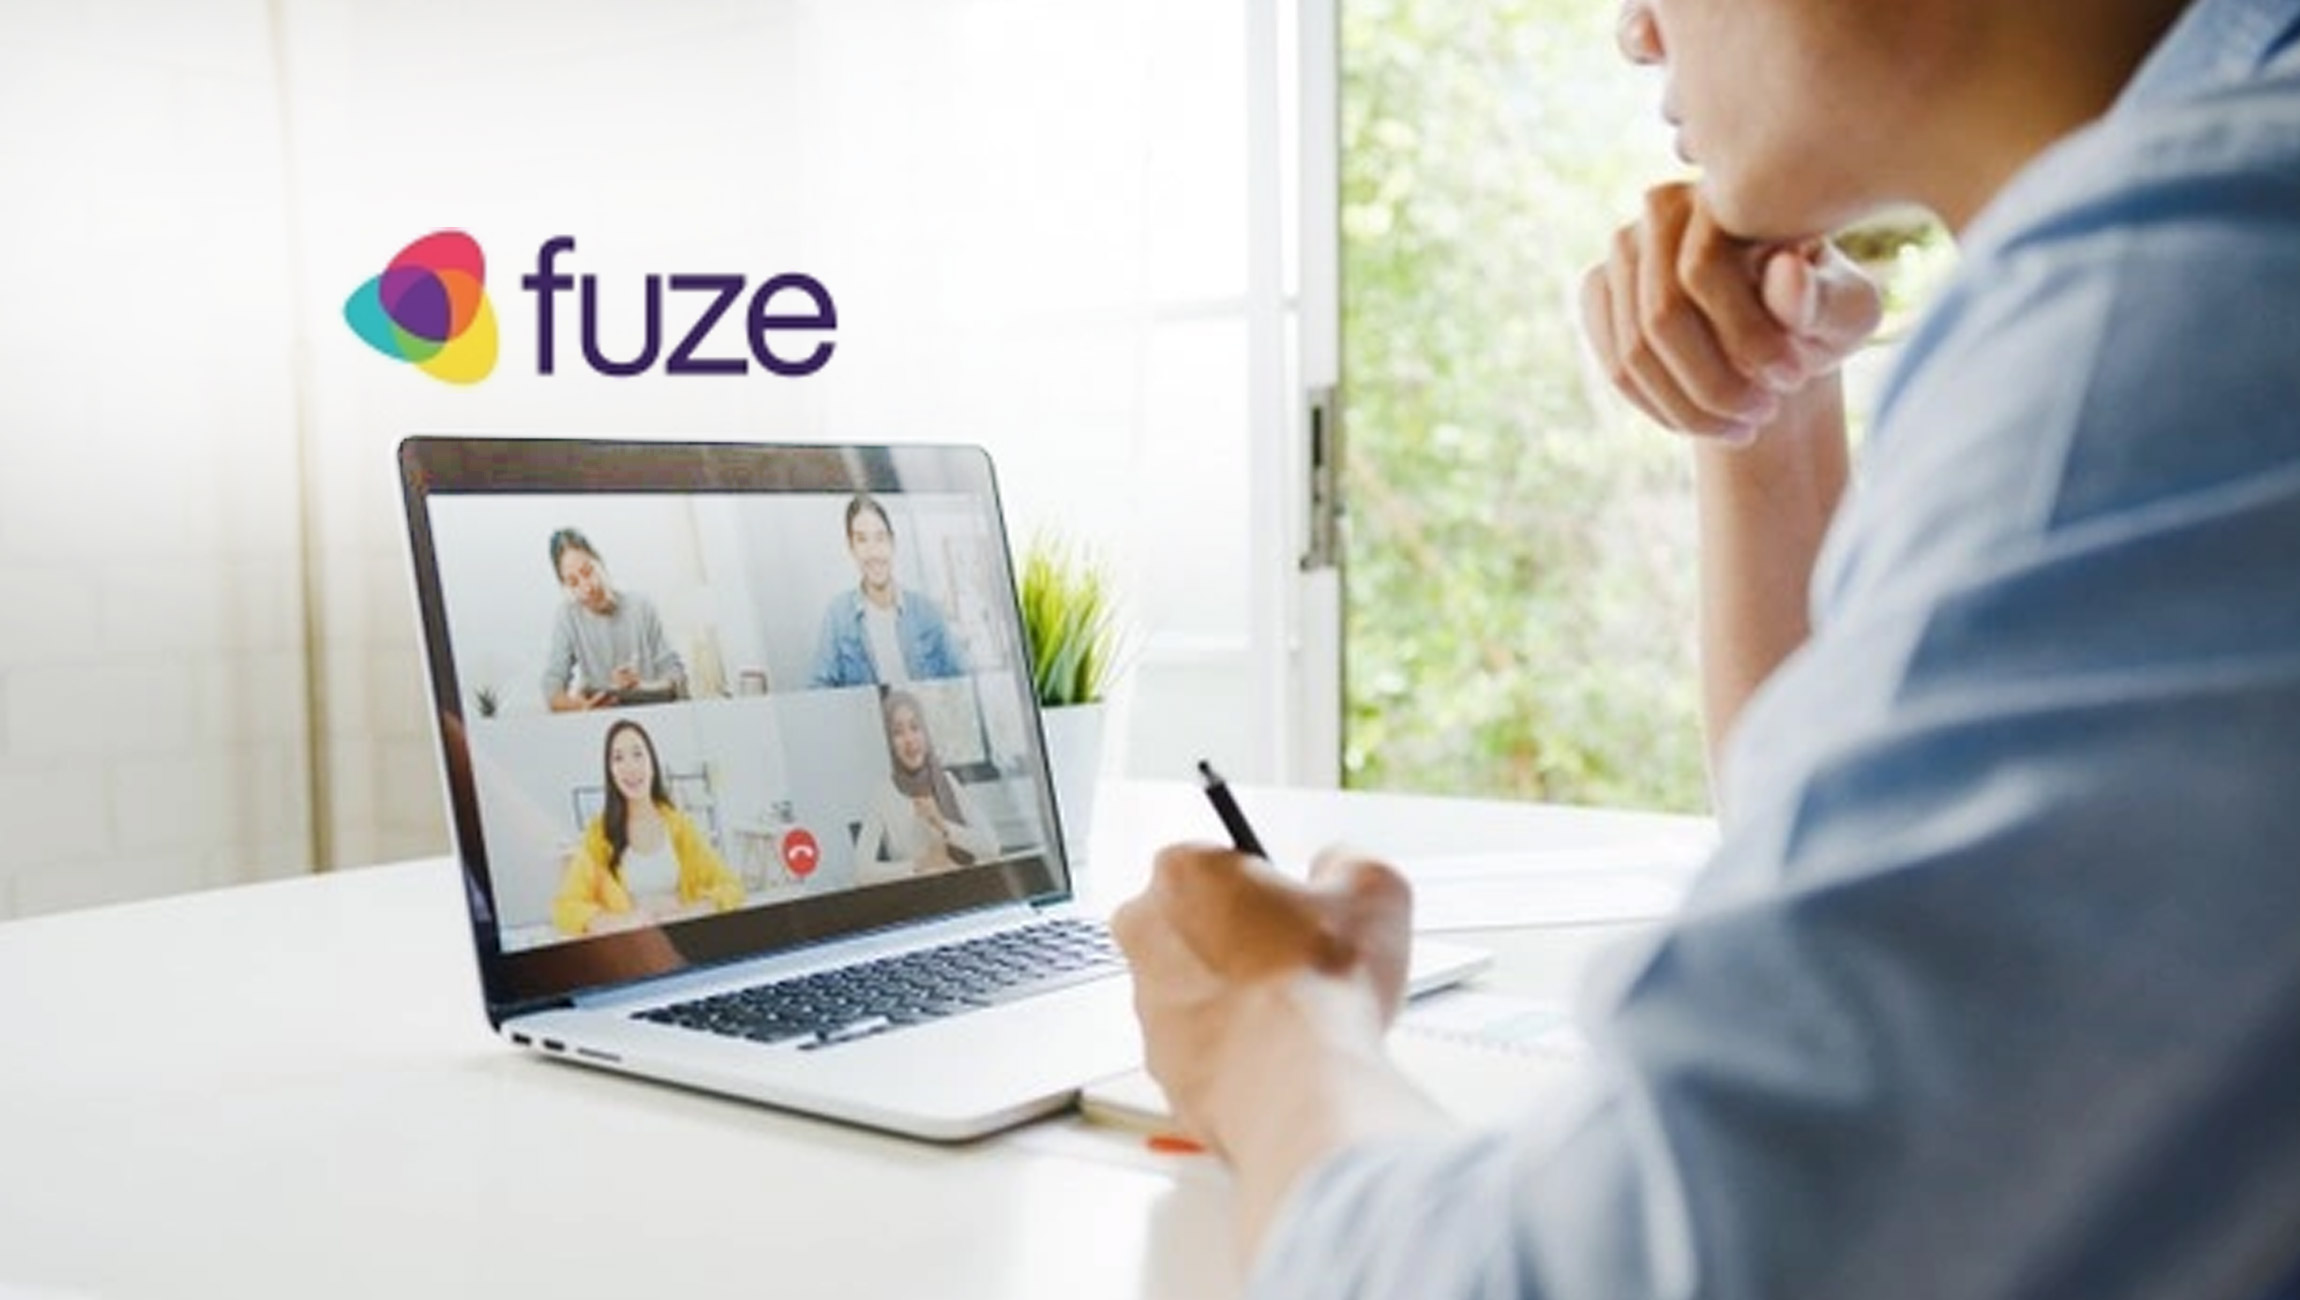 Fuze Named A Leader in the 2021 Aragon Research Globe™ for Video Conferencing